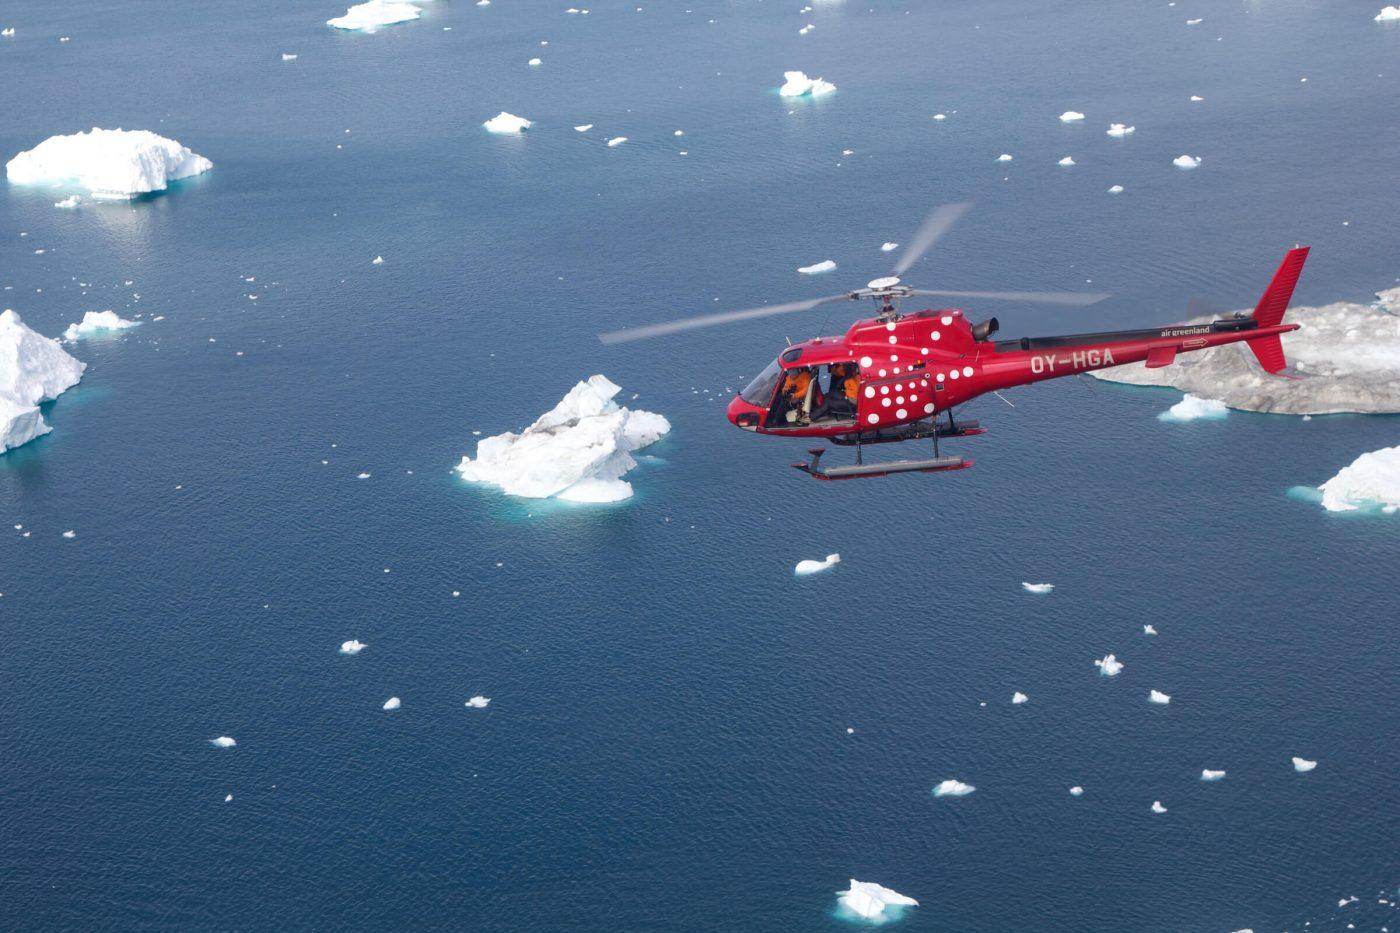 An Air Greenland AS 350 helicopter over icebergs in the Disko Bay near Ilulissat in North Greenland. Visit Greenland